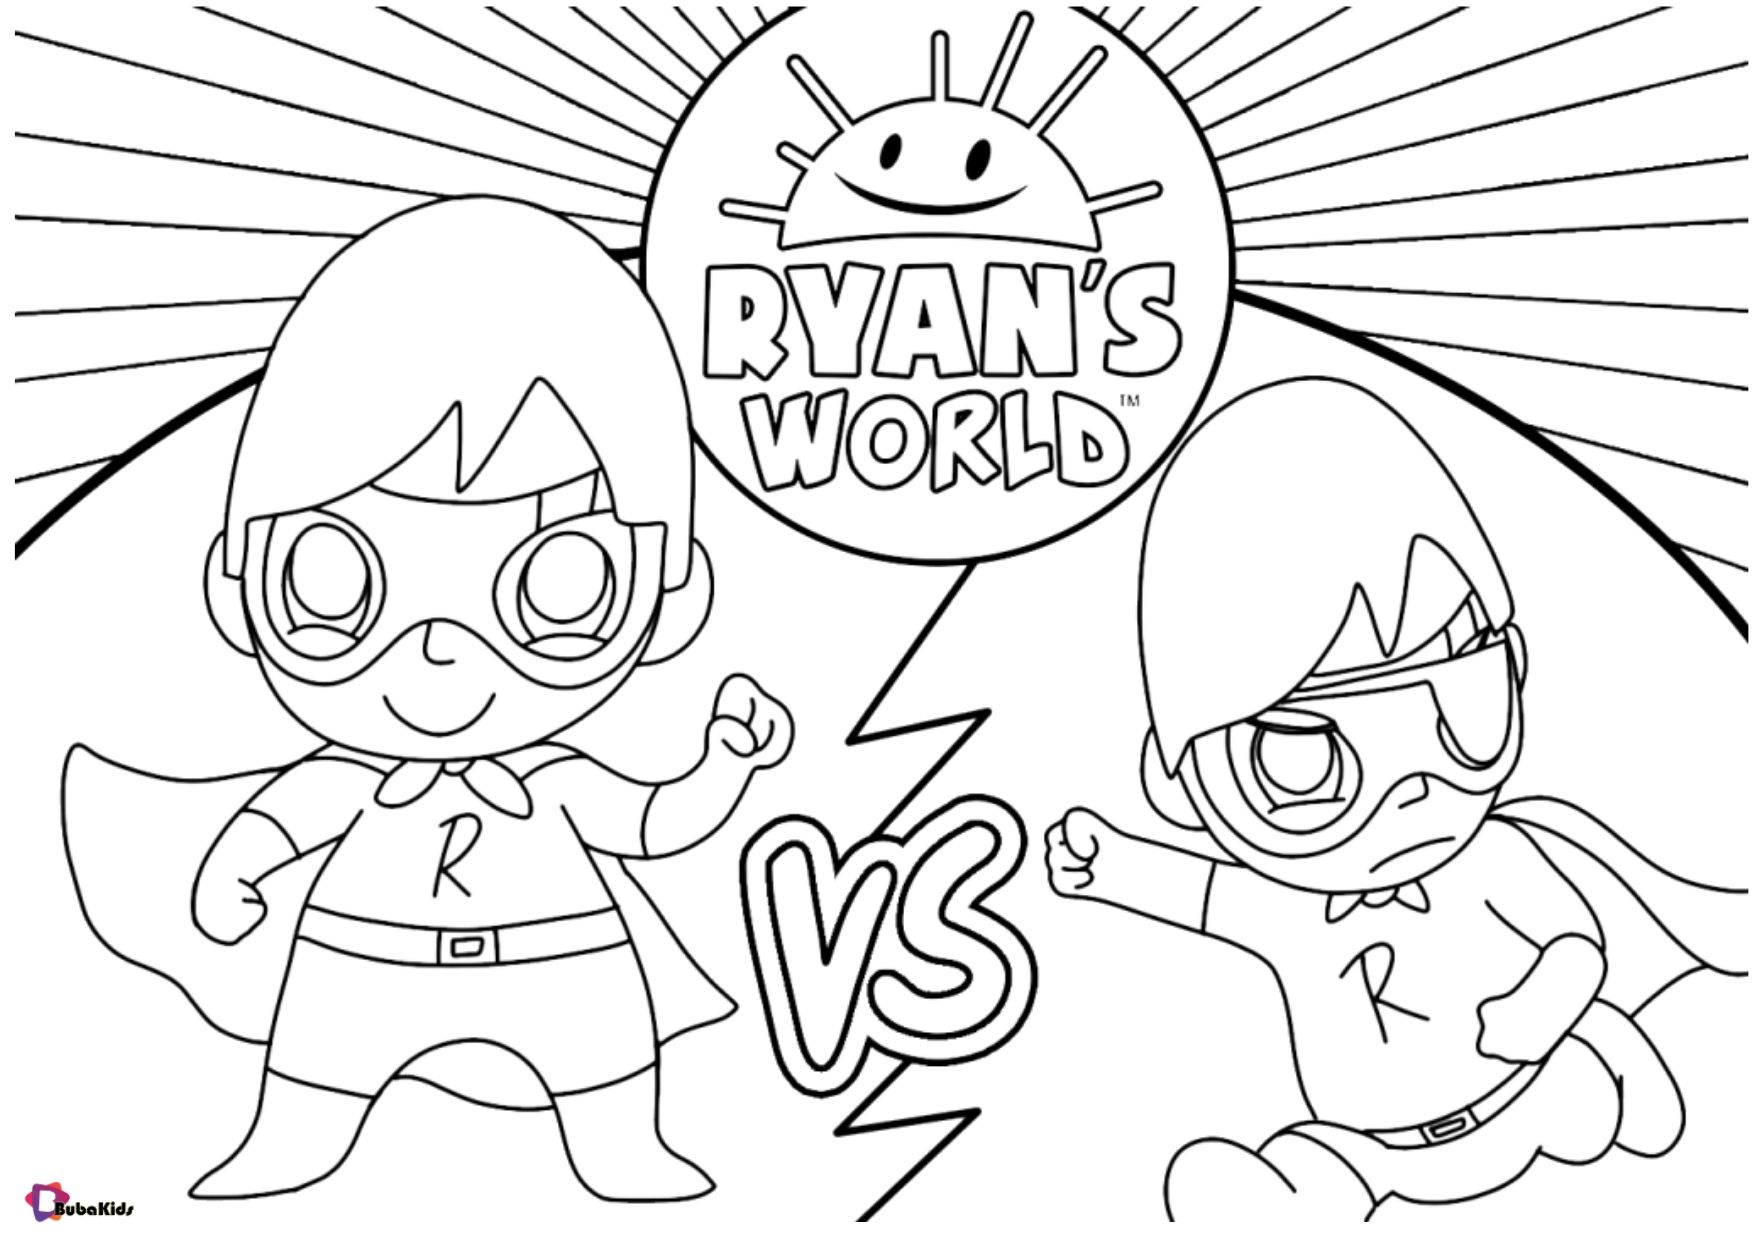 Free Download Ryan S World Coloring Page For Kids Collection Of Cartoon Coloring Page Cartoon Coloring Pages Printable Coloring Pages Superhero Coloring Pages